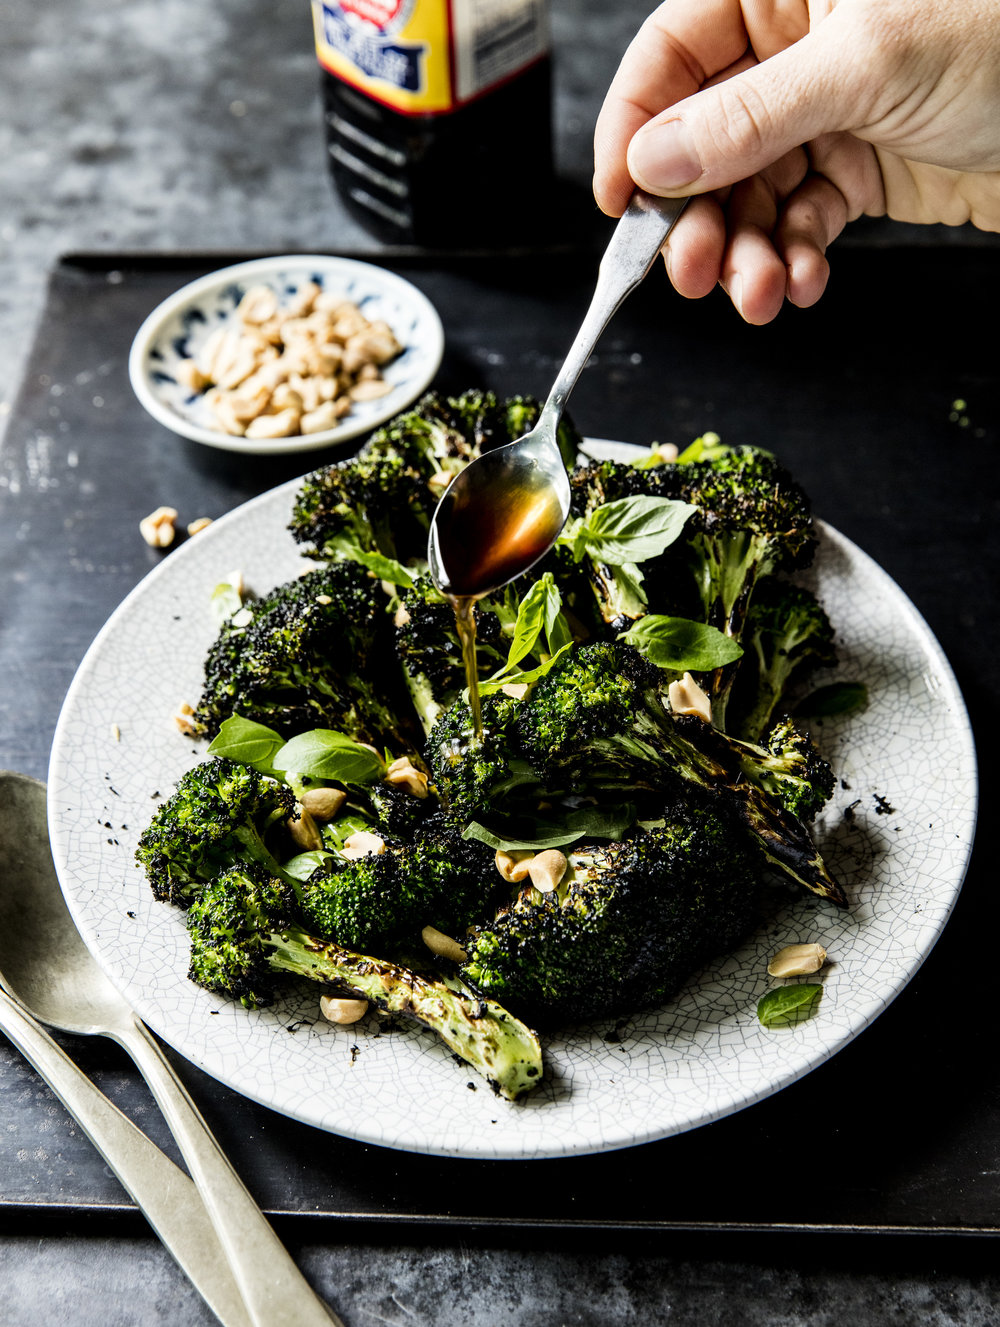 0353-Kass-Charred-Broccoli-287.jpg